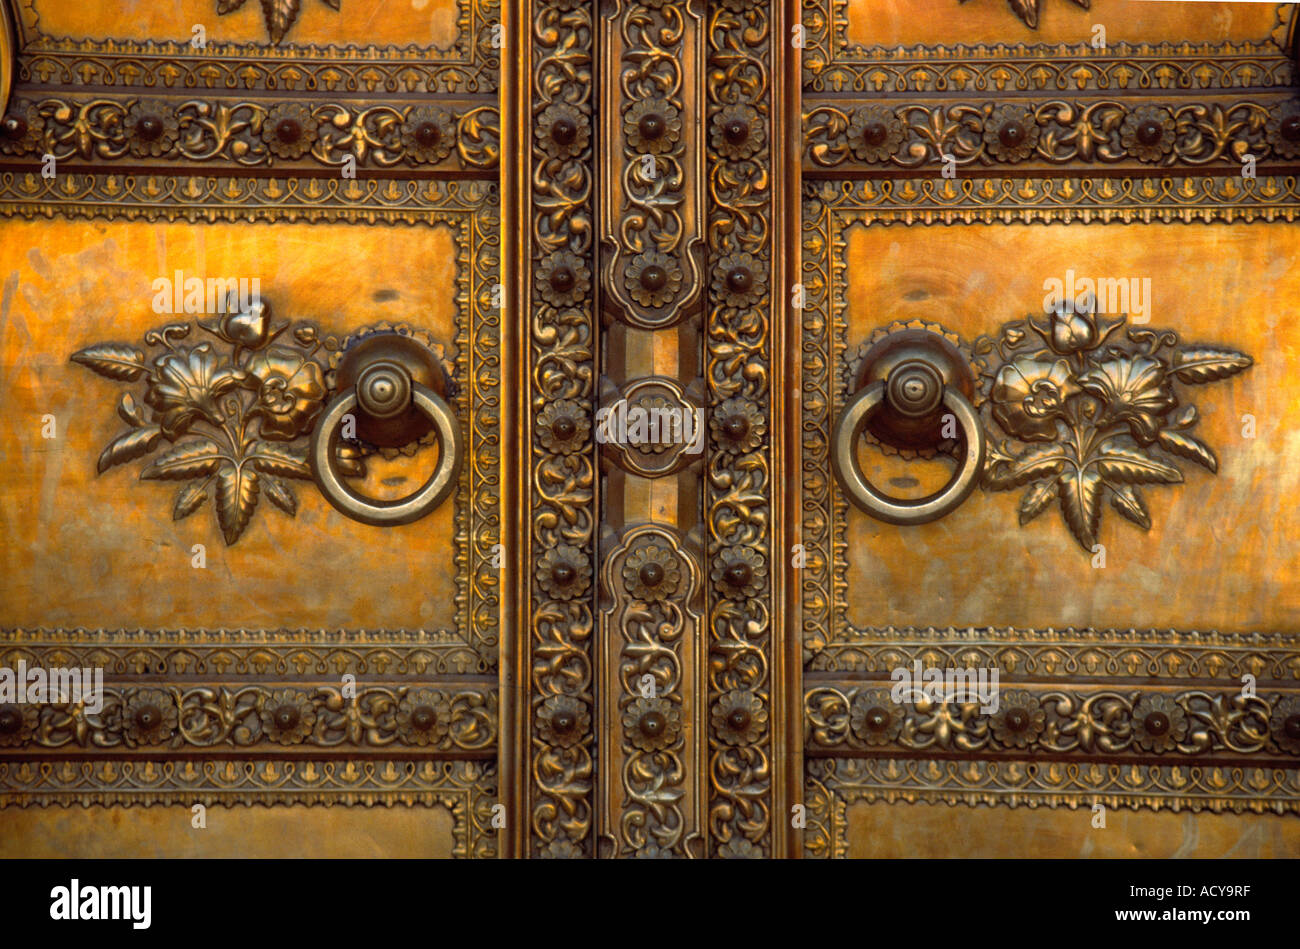 A GOLDEN DOOR with FLORAL DESIGNS at the entrance to the CITY PALACE in JAIPUR RAJASTHAN INDIA & A GOLDEN DOOR with FLORAL DESIGNS at the entrance to the CITY ... Pezcame.Com